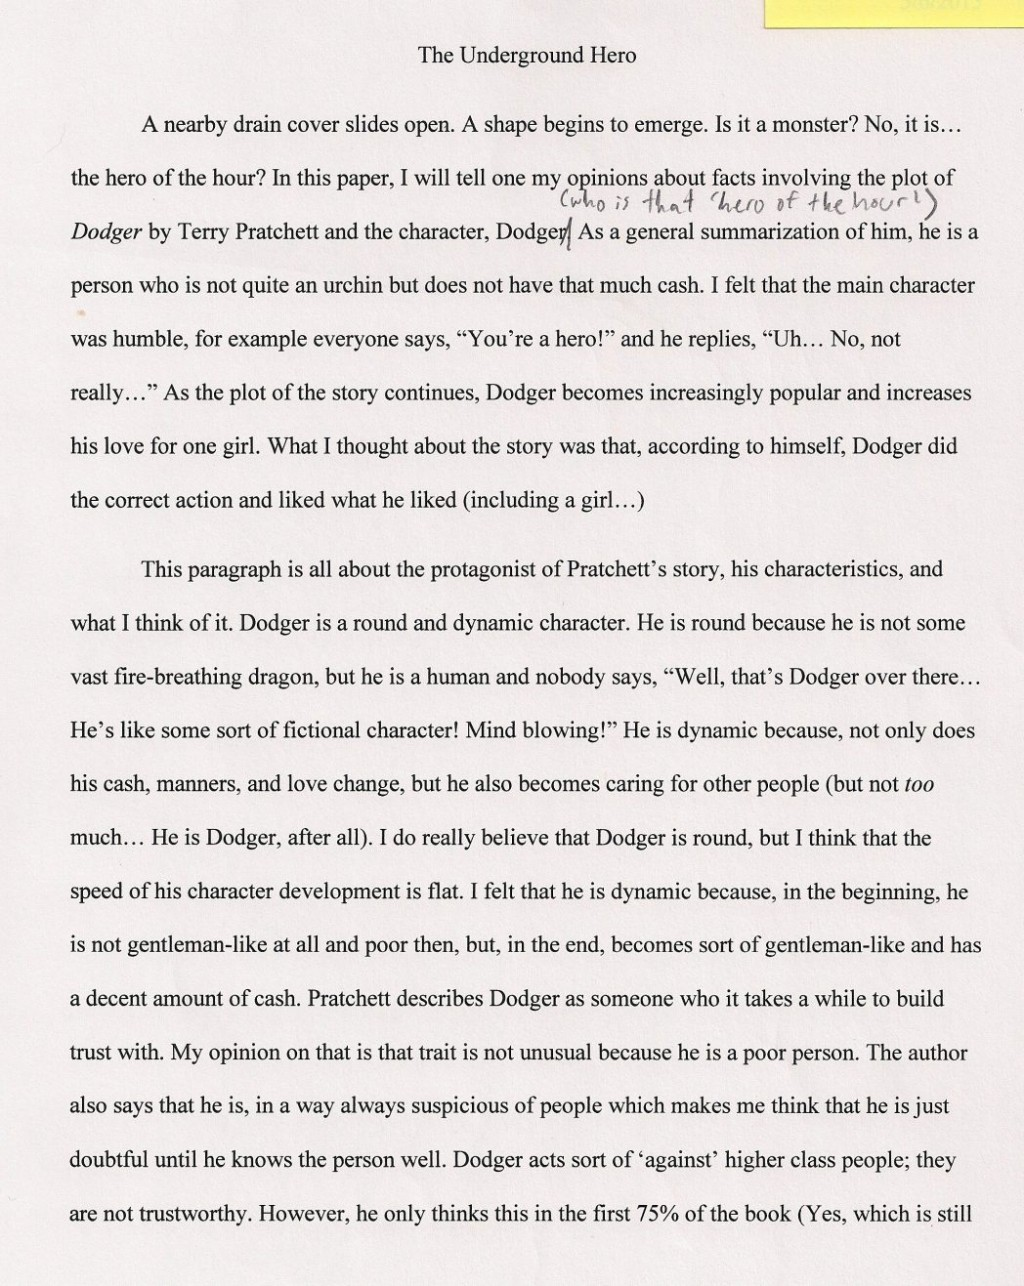 010 Satire Essay Global Warming On Heroes My Hero Essays How To Write An Argumentative The Undergro Persuasive About Study Mode Good Paper 1048x1317 Beautiful Outline Funny Topics Large